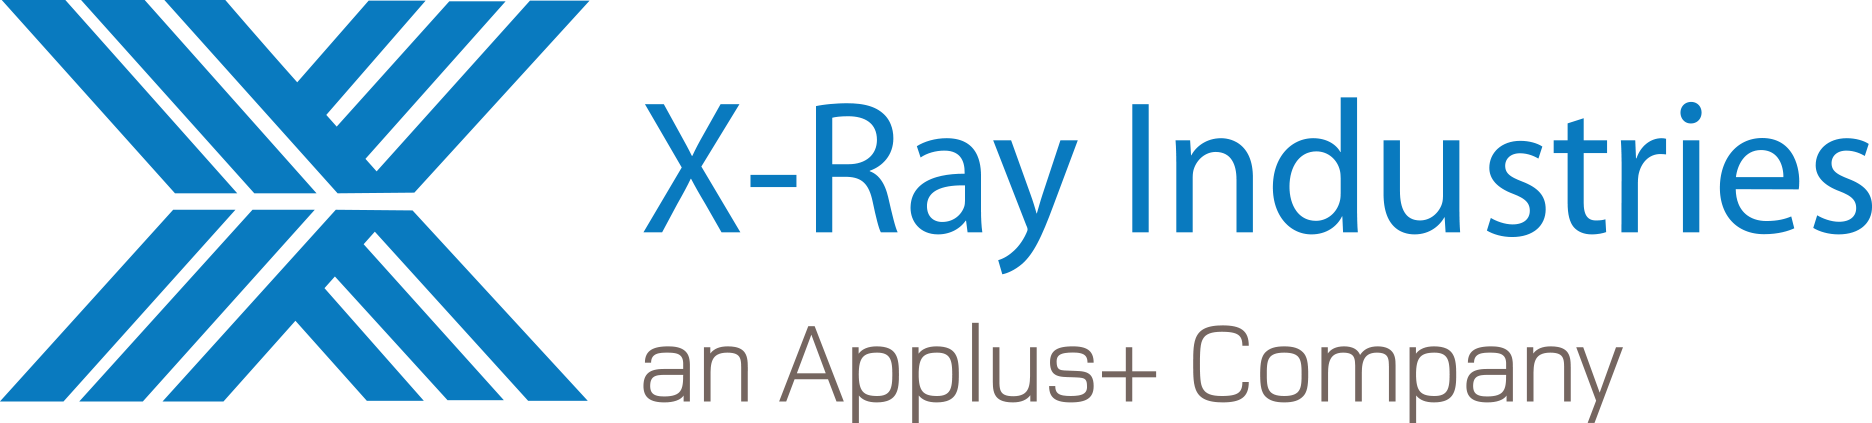 X-Ray Industries PlusPng.com  - Applus Logo PNG